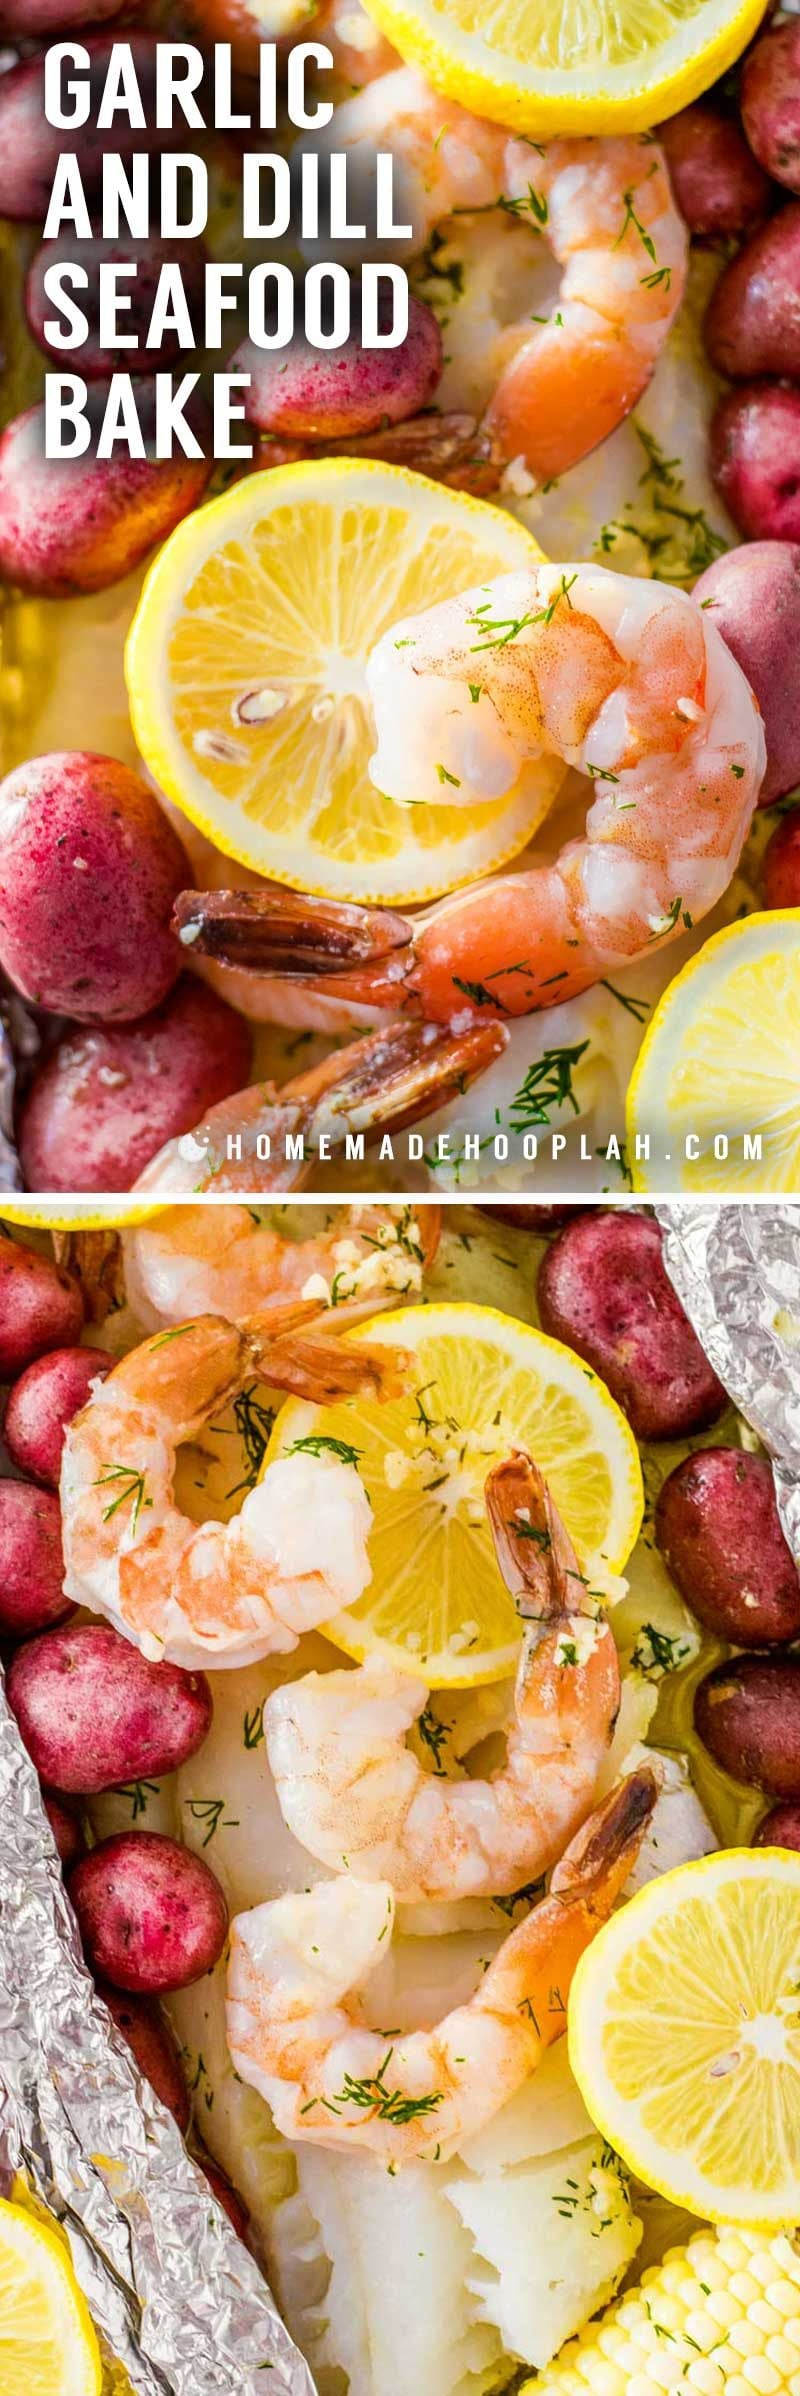 Garlic and Dill Seafood Bake! This restaurant-quality seafood bake is made by wrapping fish, shrimp, and seasonings in foil packets and then cooked in the oven. Perfect for a quick weeknight dinner or serving at a party. Customize it with your favorite veggies or fish! | HomemadeHooplah.com